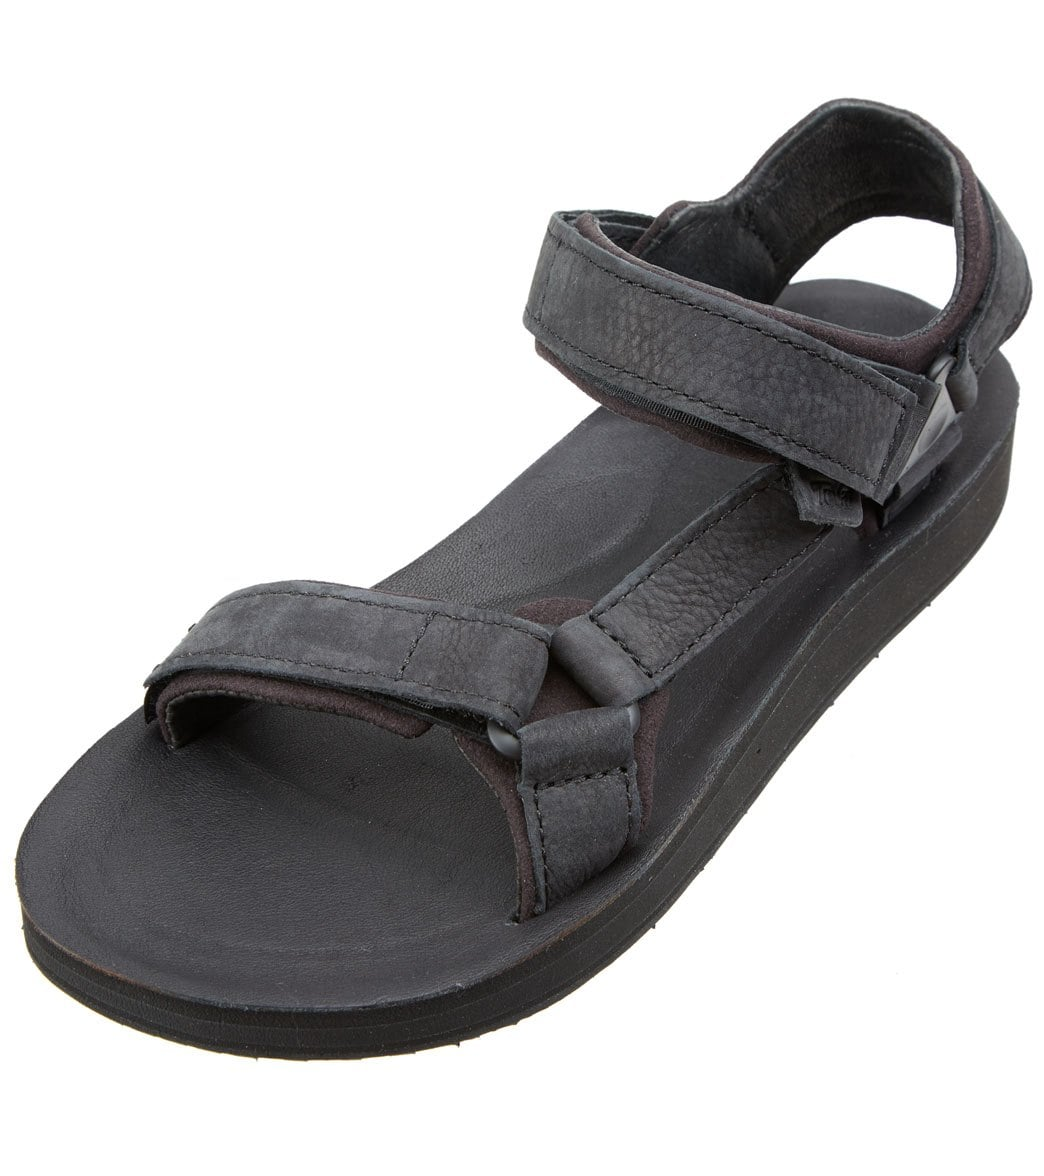 56a9e0dfb8828b Teva Women's Original Universal Premier-Leather Sandal at SwimOutlet.com - Free  Shipping